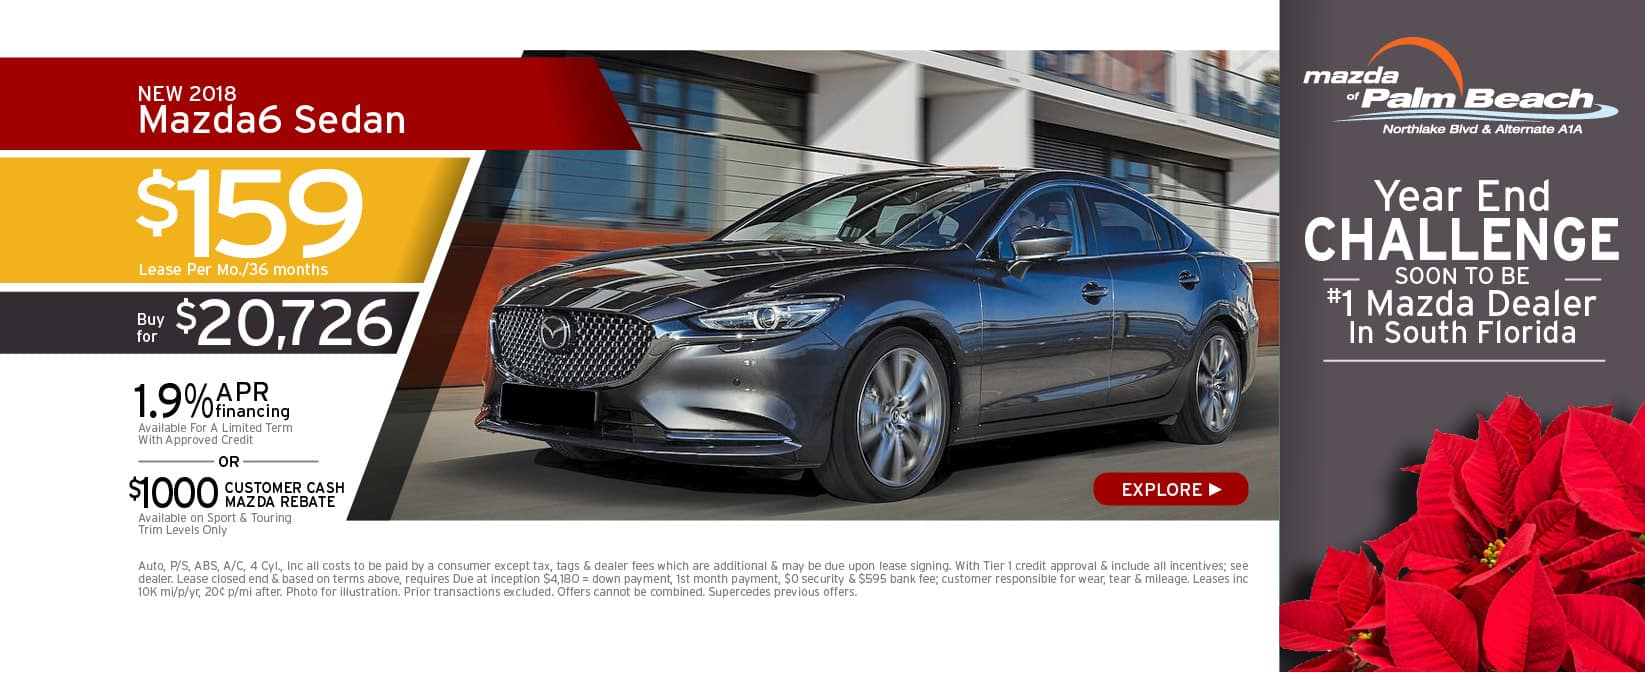 Welcome To Mazda of Palm Beach